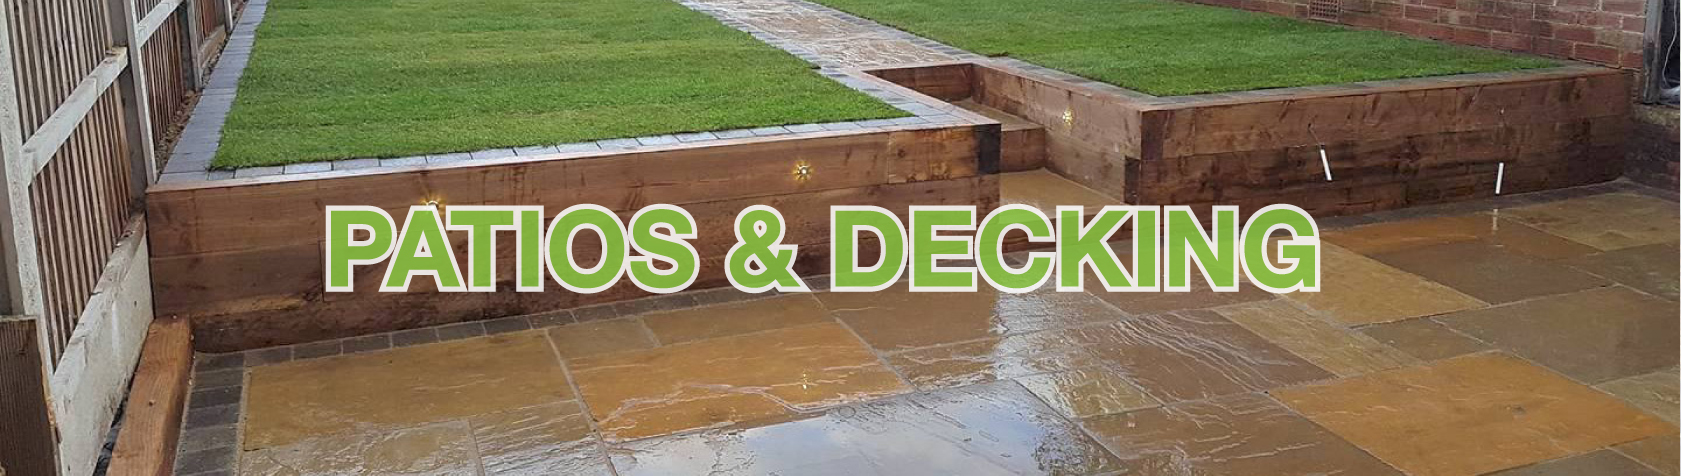 Patios and Decking Tring